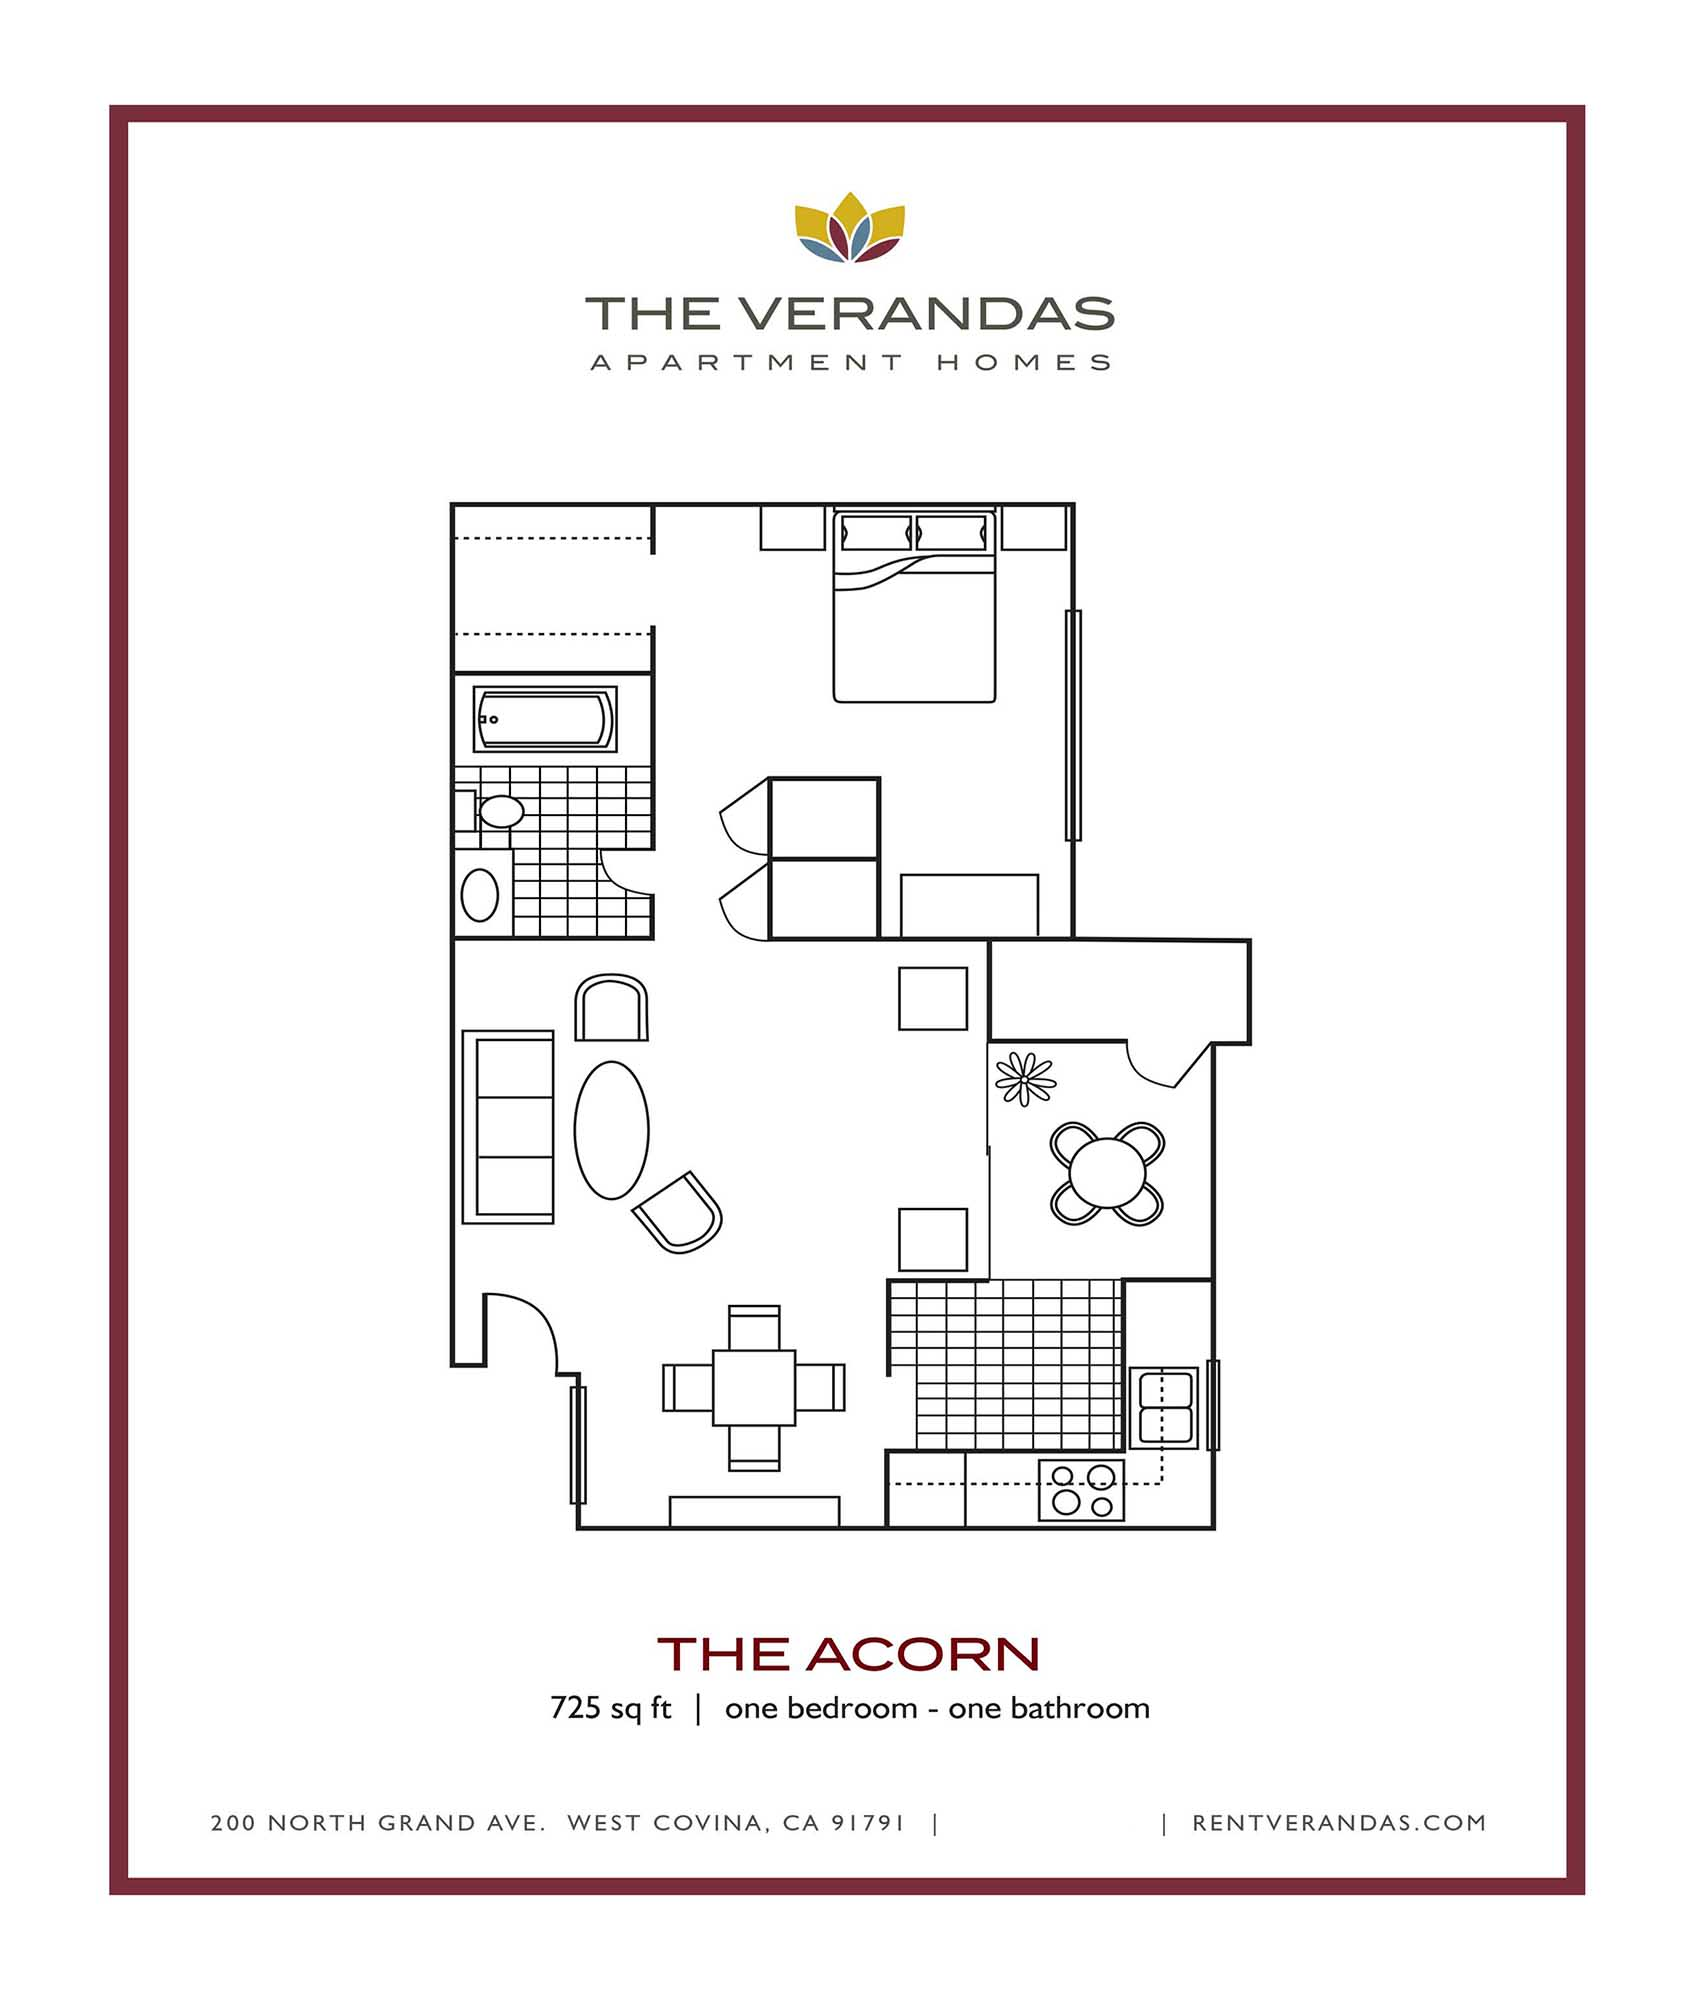 Floor Plan  1 Bed 1 Bath Floor plan at The Verandas Apartment Homes, West Covina, California